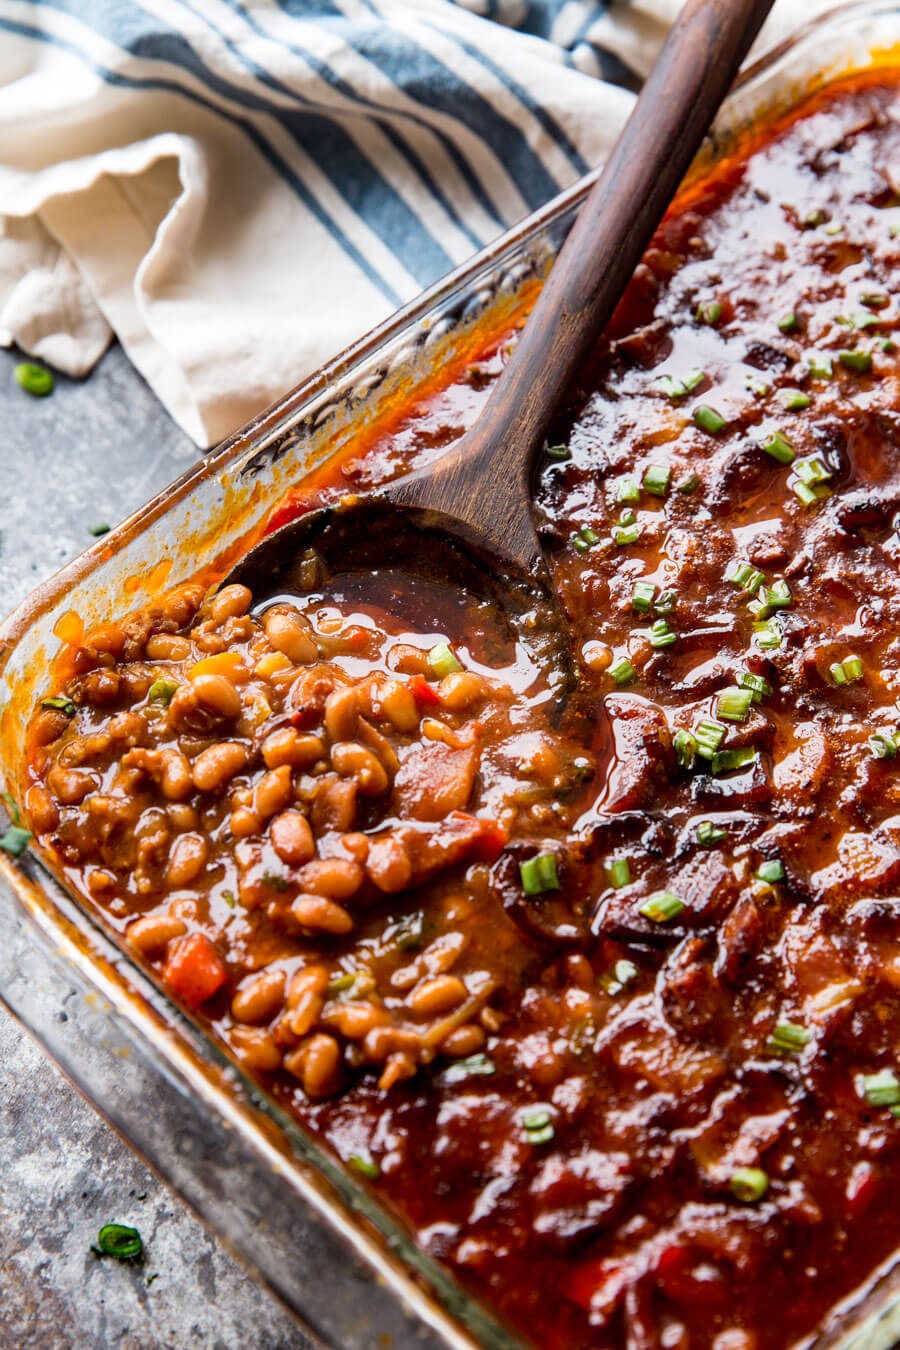 How to make good bbq baked beans at homemade smoked sausage